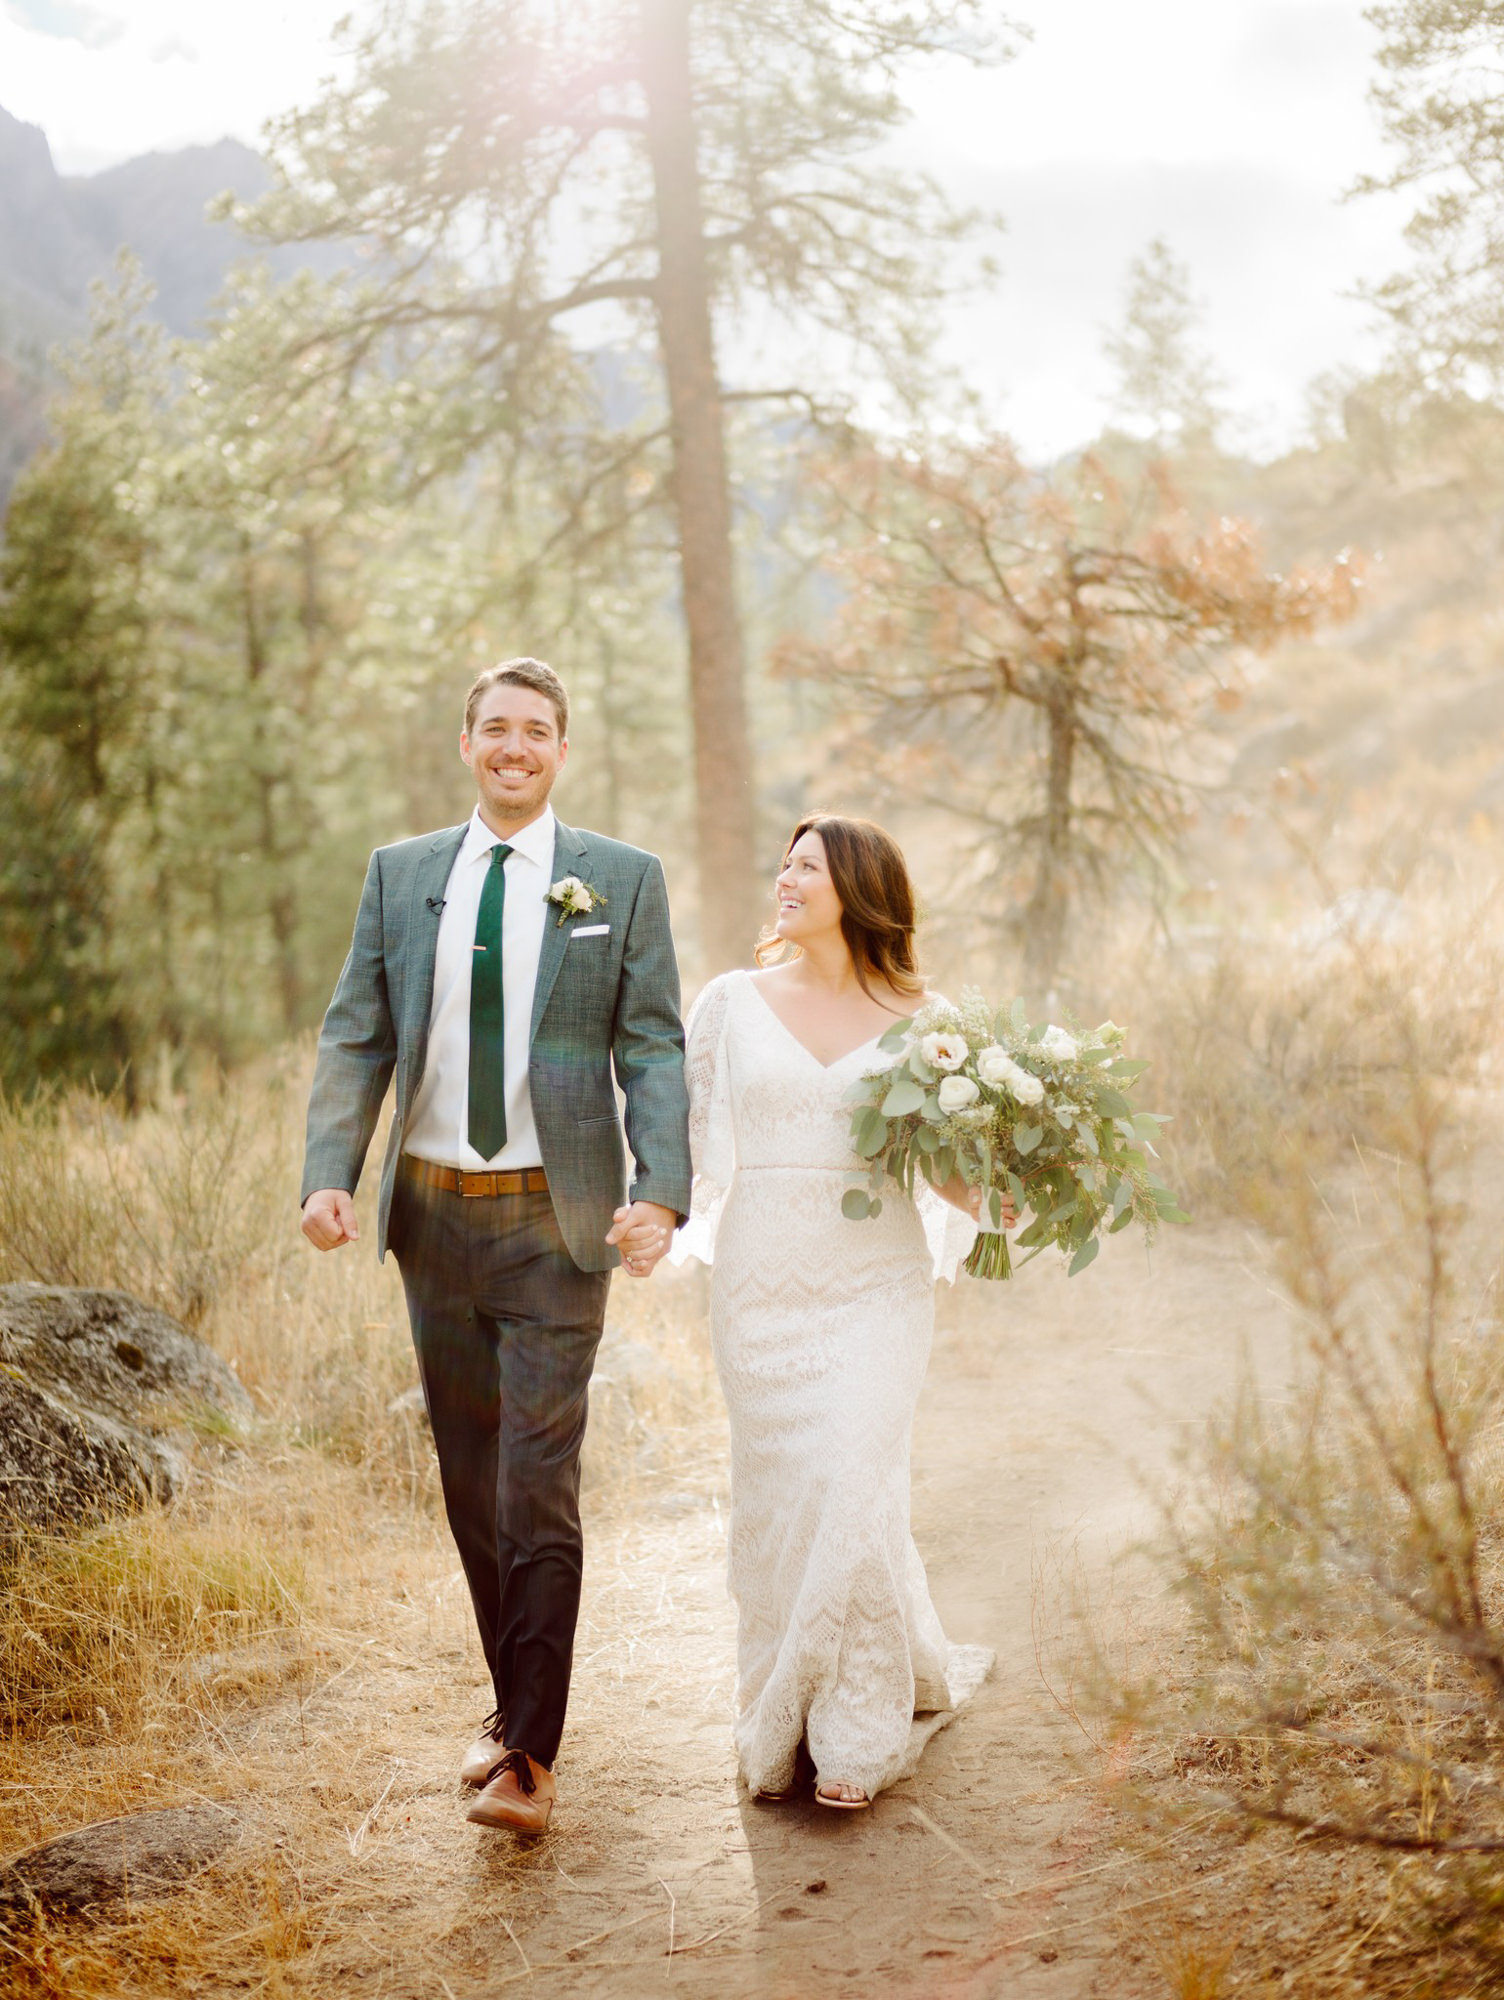 Bride in cape lace gown and groom in grey suit stroll through forest, by Benj Haisch